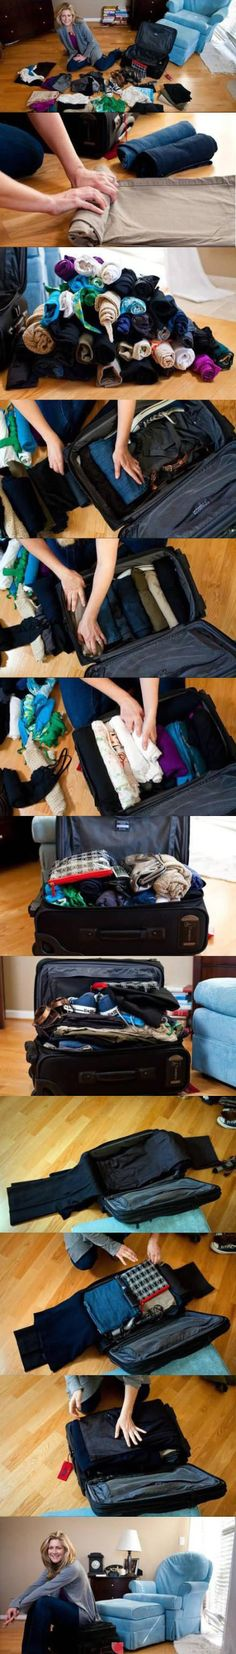 Packing clothing, how to pack a large amount in a small space.